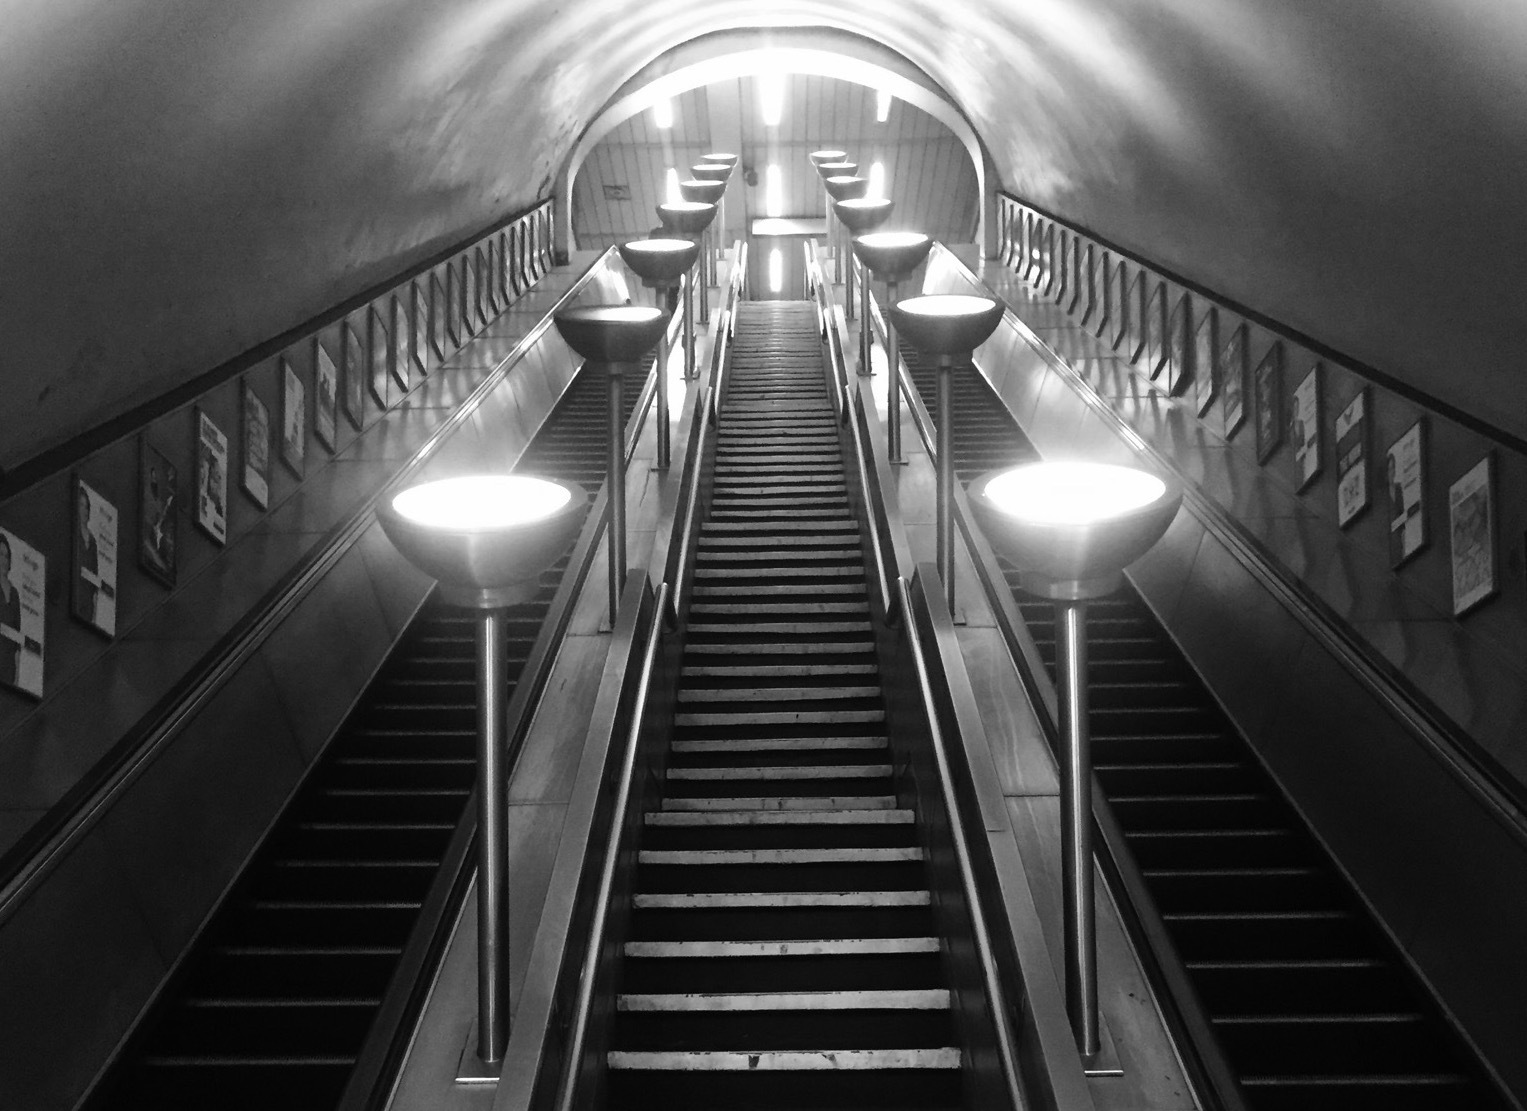 tube, Quiet London, TfL, night owls, Clapham Common